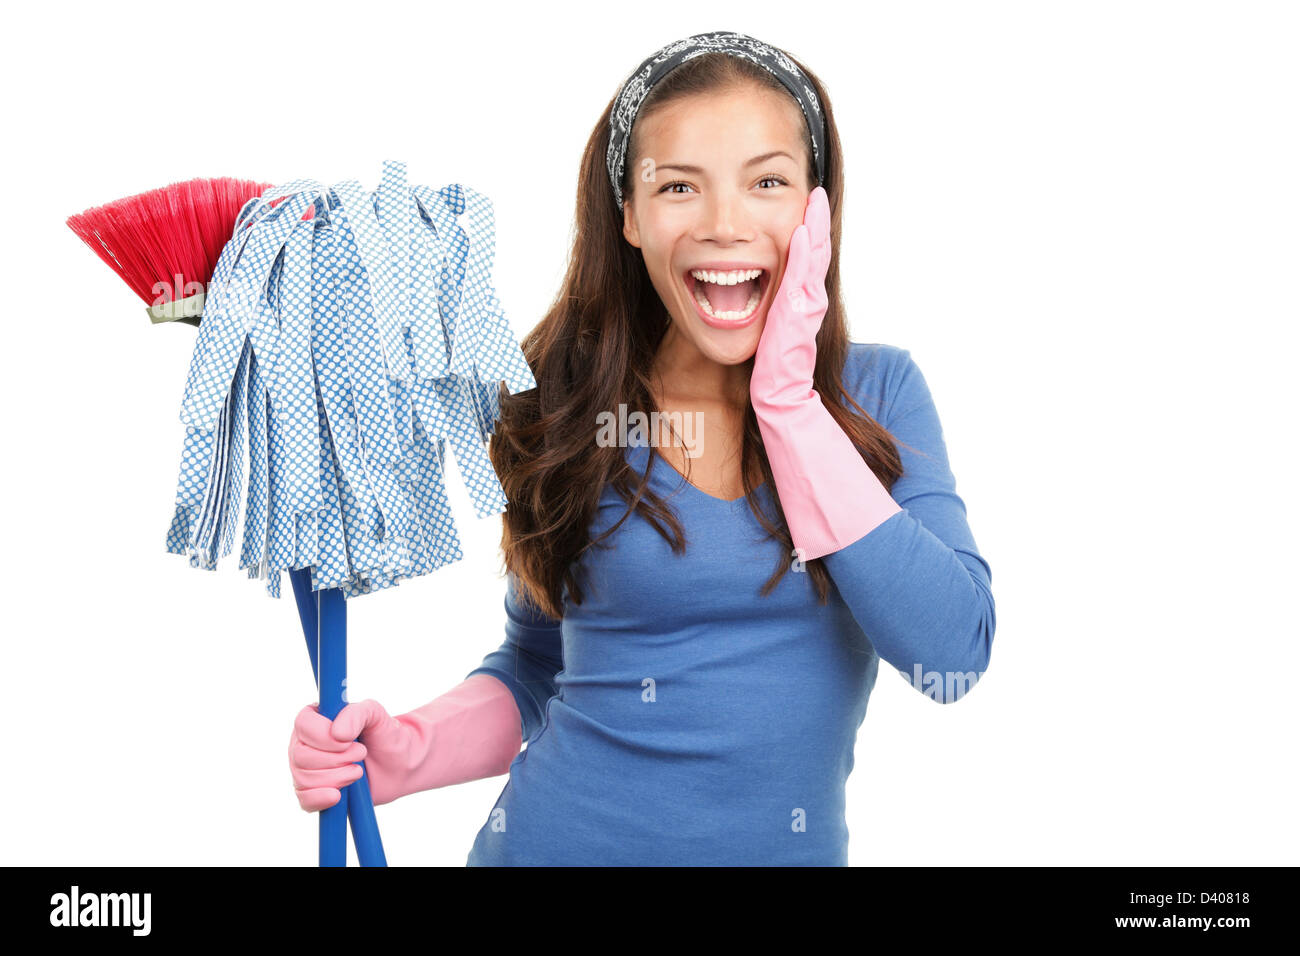 Portrait of happy and surprised house cleaning woman with mops isolated on white background - Stock Image